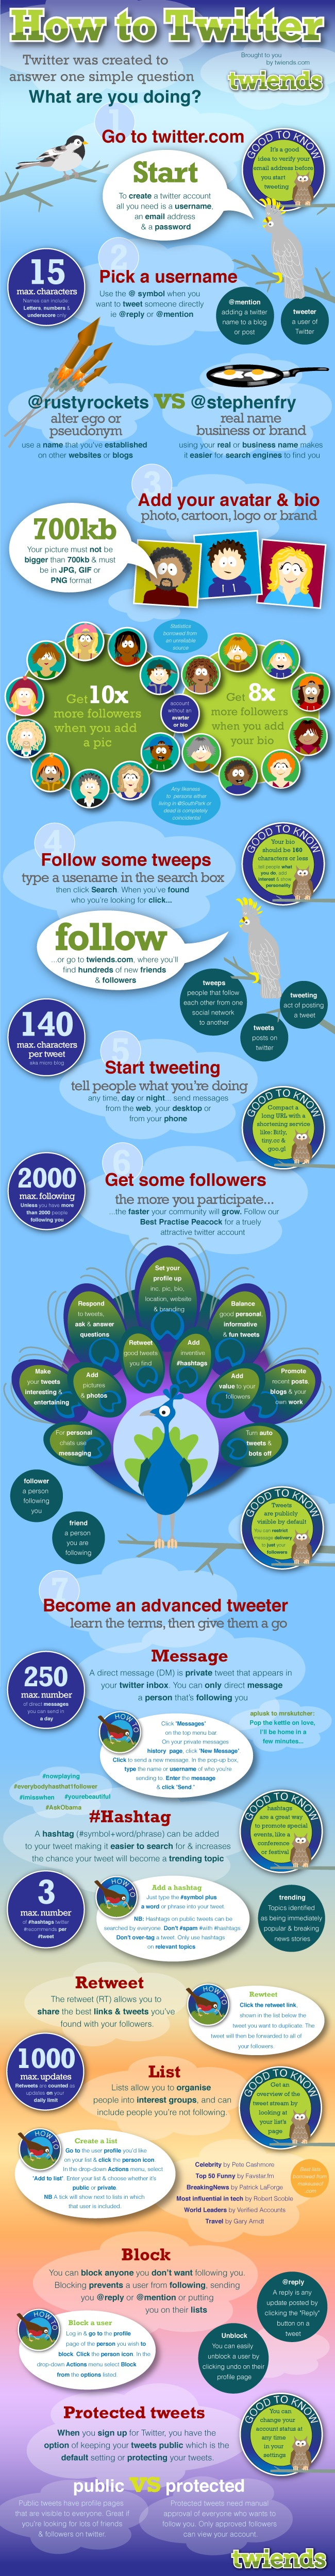 Reference: http://www.mediabistro.com/alltwitter/how-to-twitter-infographic_b12491